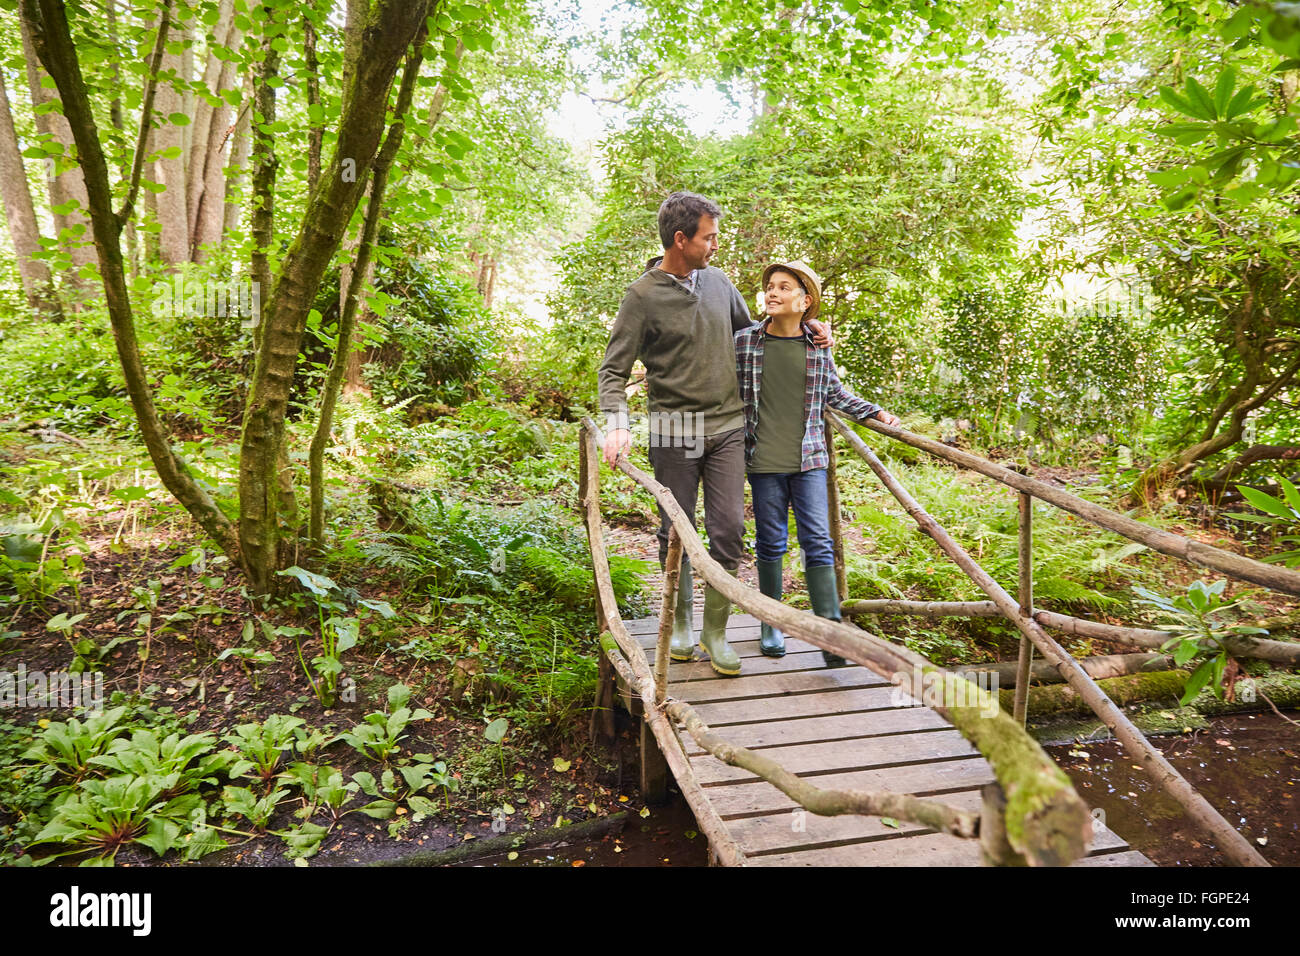 Father and son crossing footbridge in forest - Stock Image